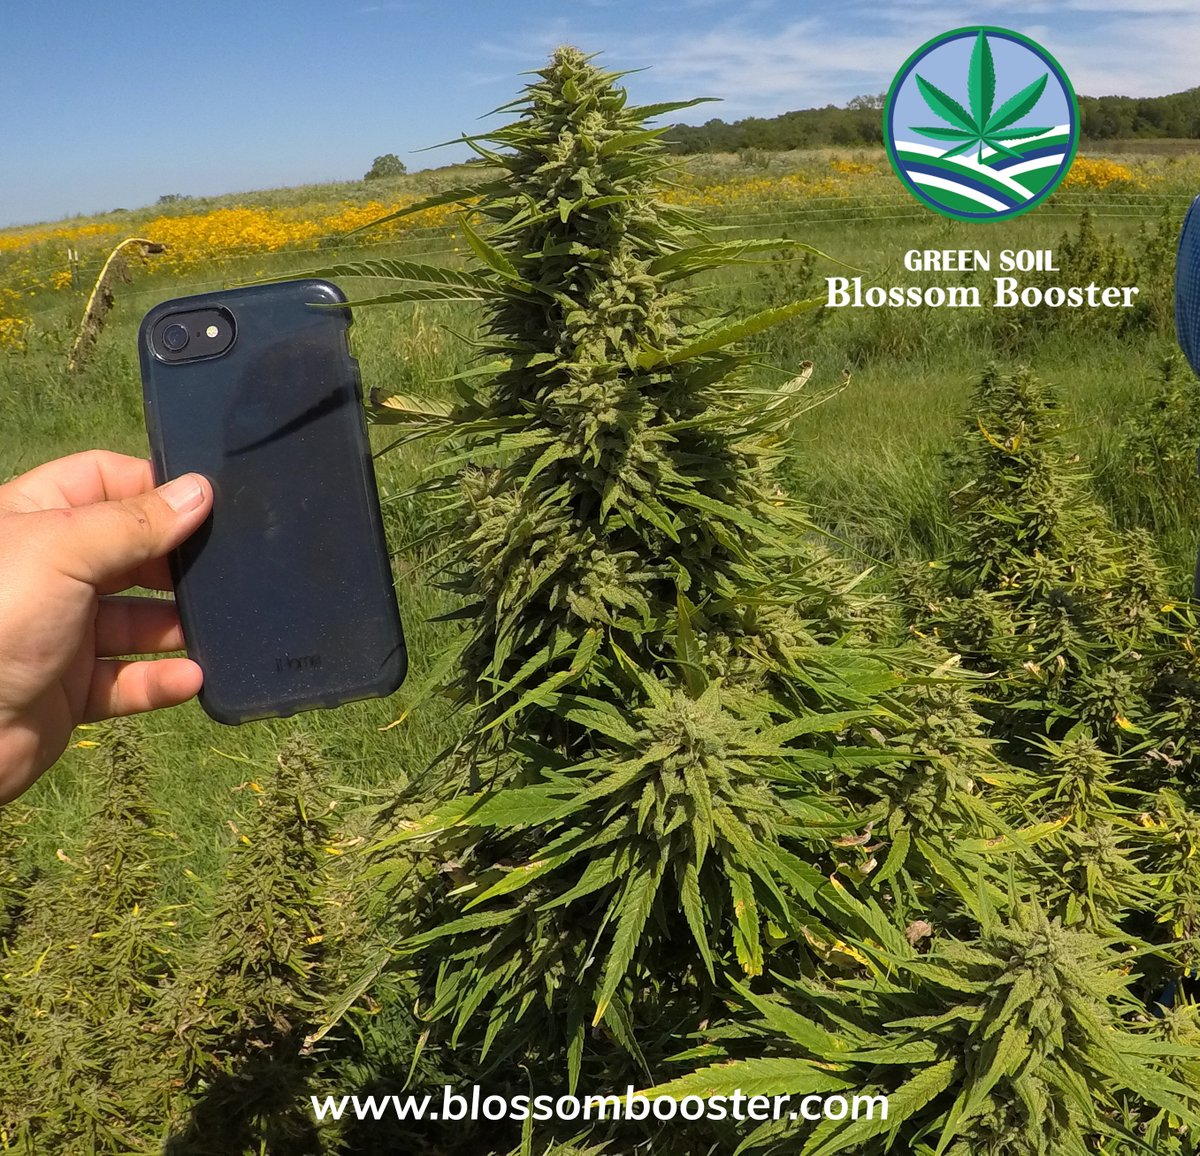 🌿 Outdoor cannabis, using just Blossom Booster and native heavy clay soil.🌿 Blossom Booster is recommended for use by all cannabis growers after their live tests.🌐 https://t.co/fjGTviOis5 #cannabissociety #cannabisoil #cannabiscures #cannabisismedicine #cannabisculture https://t.co/ujEv4QDnz9